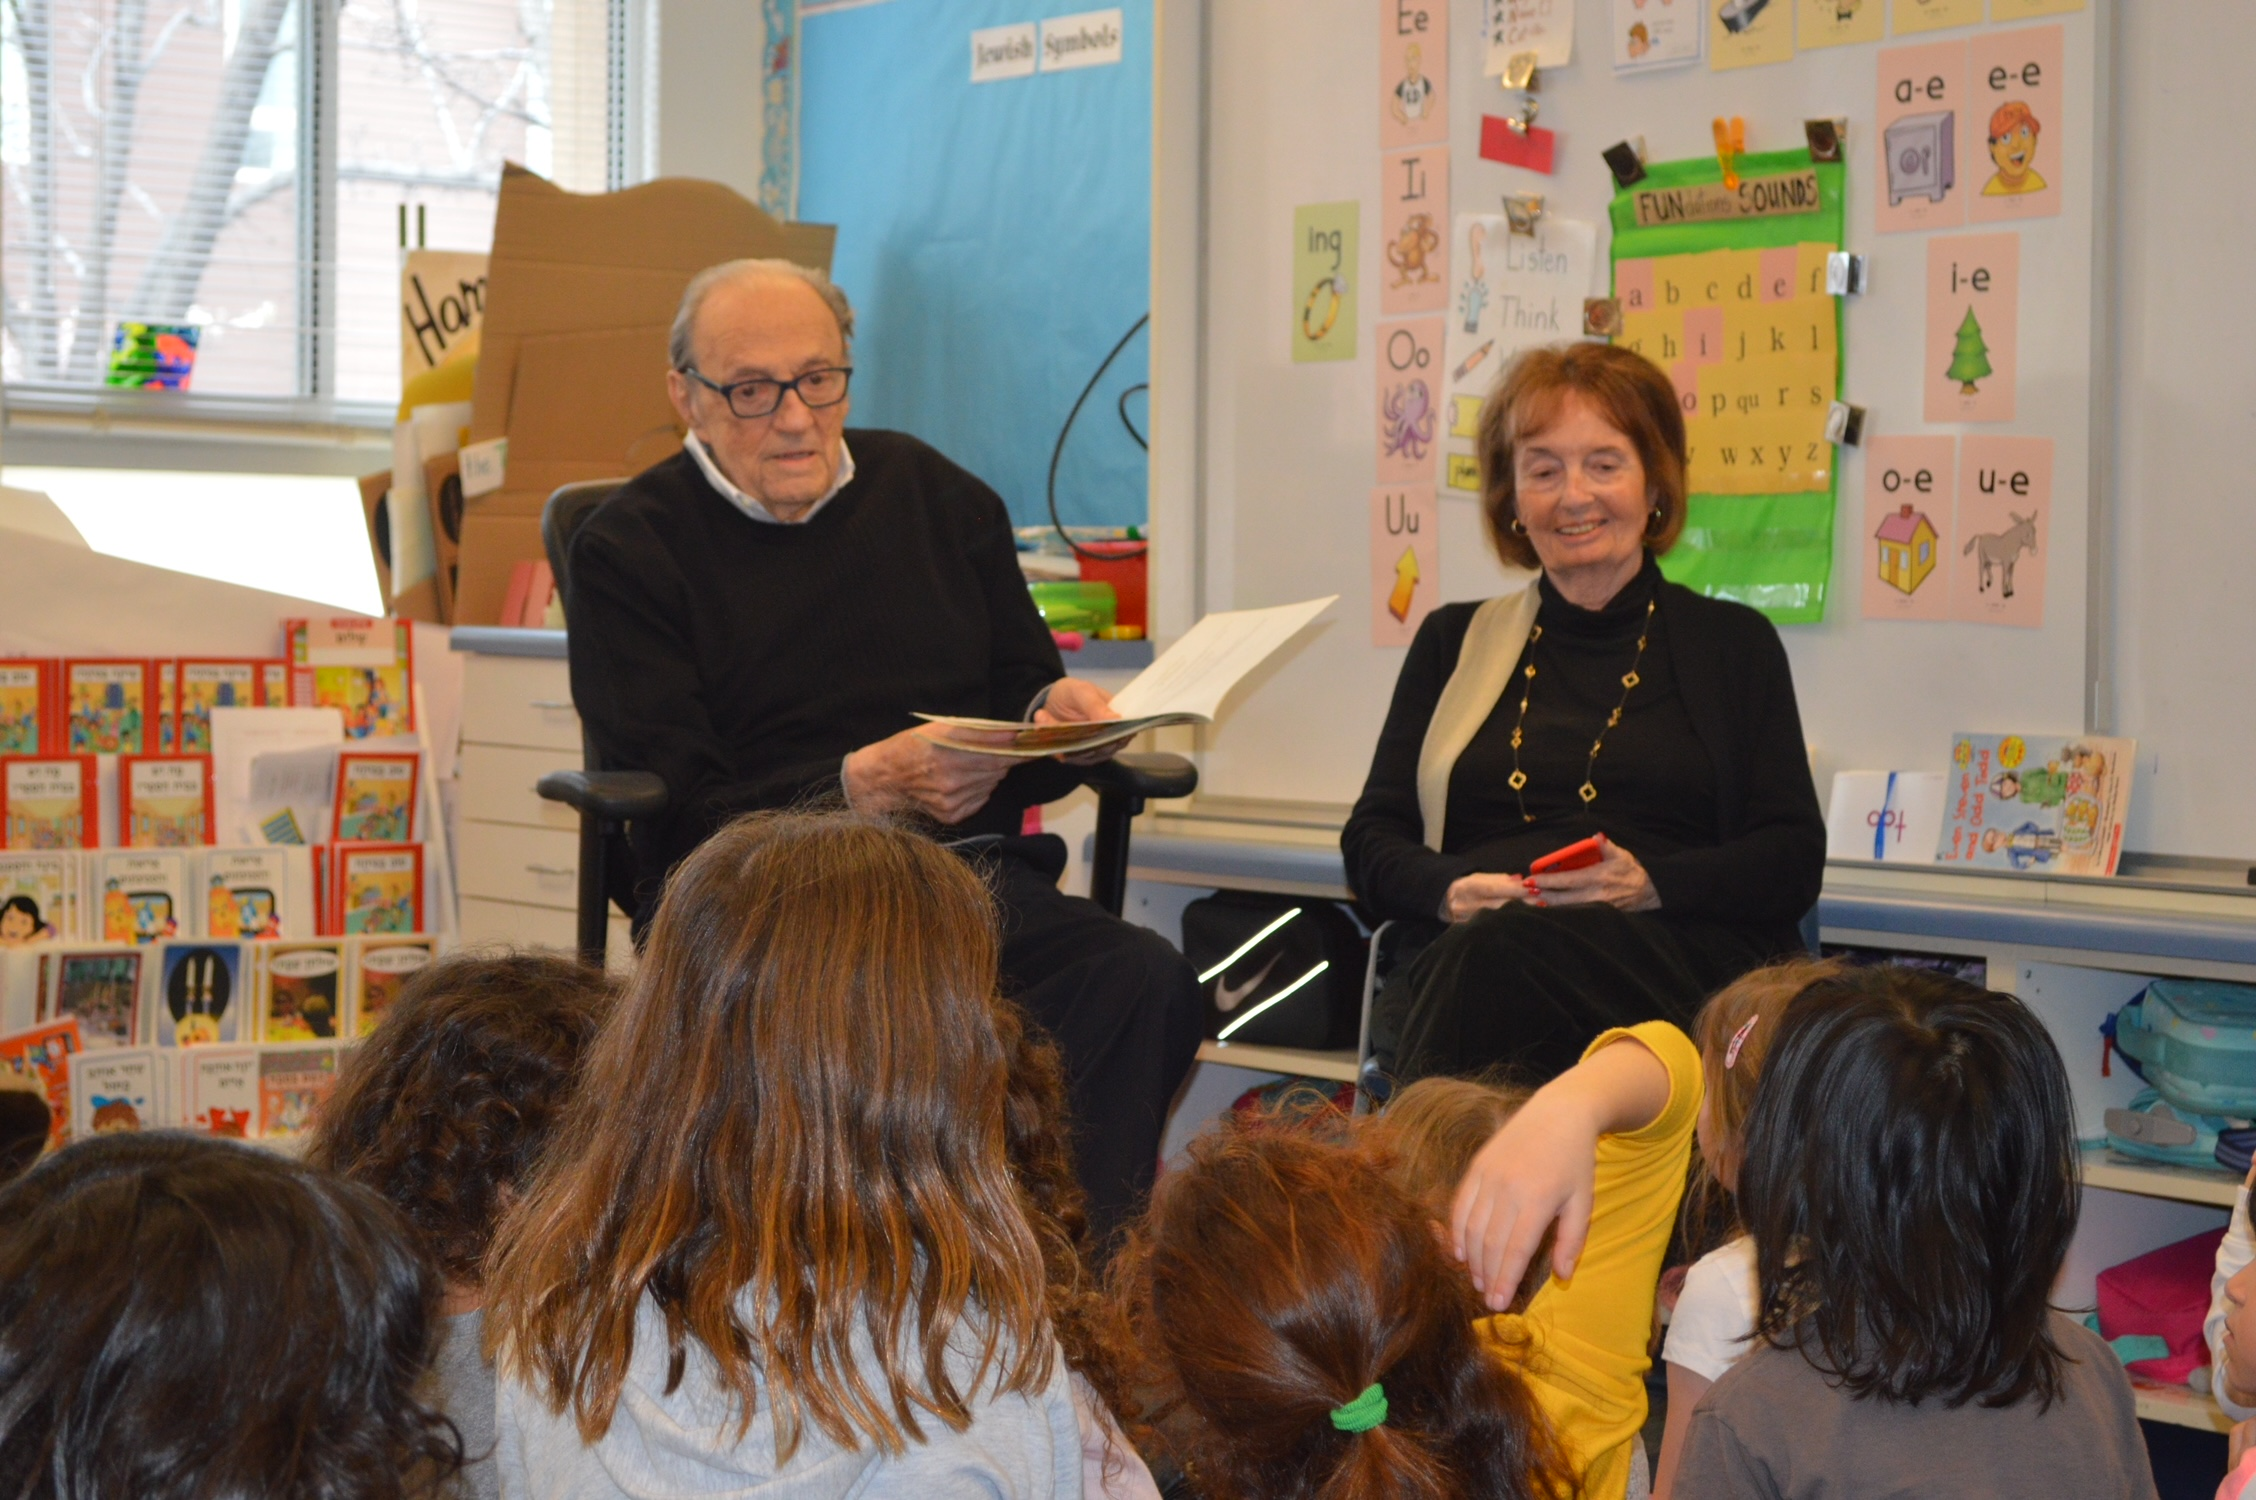 Ron Wornick reads to a class at the school that bears his name. (Photo/ Courtesy Ronald C. Wornick Jewish Day School)